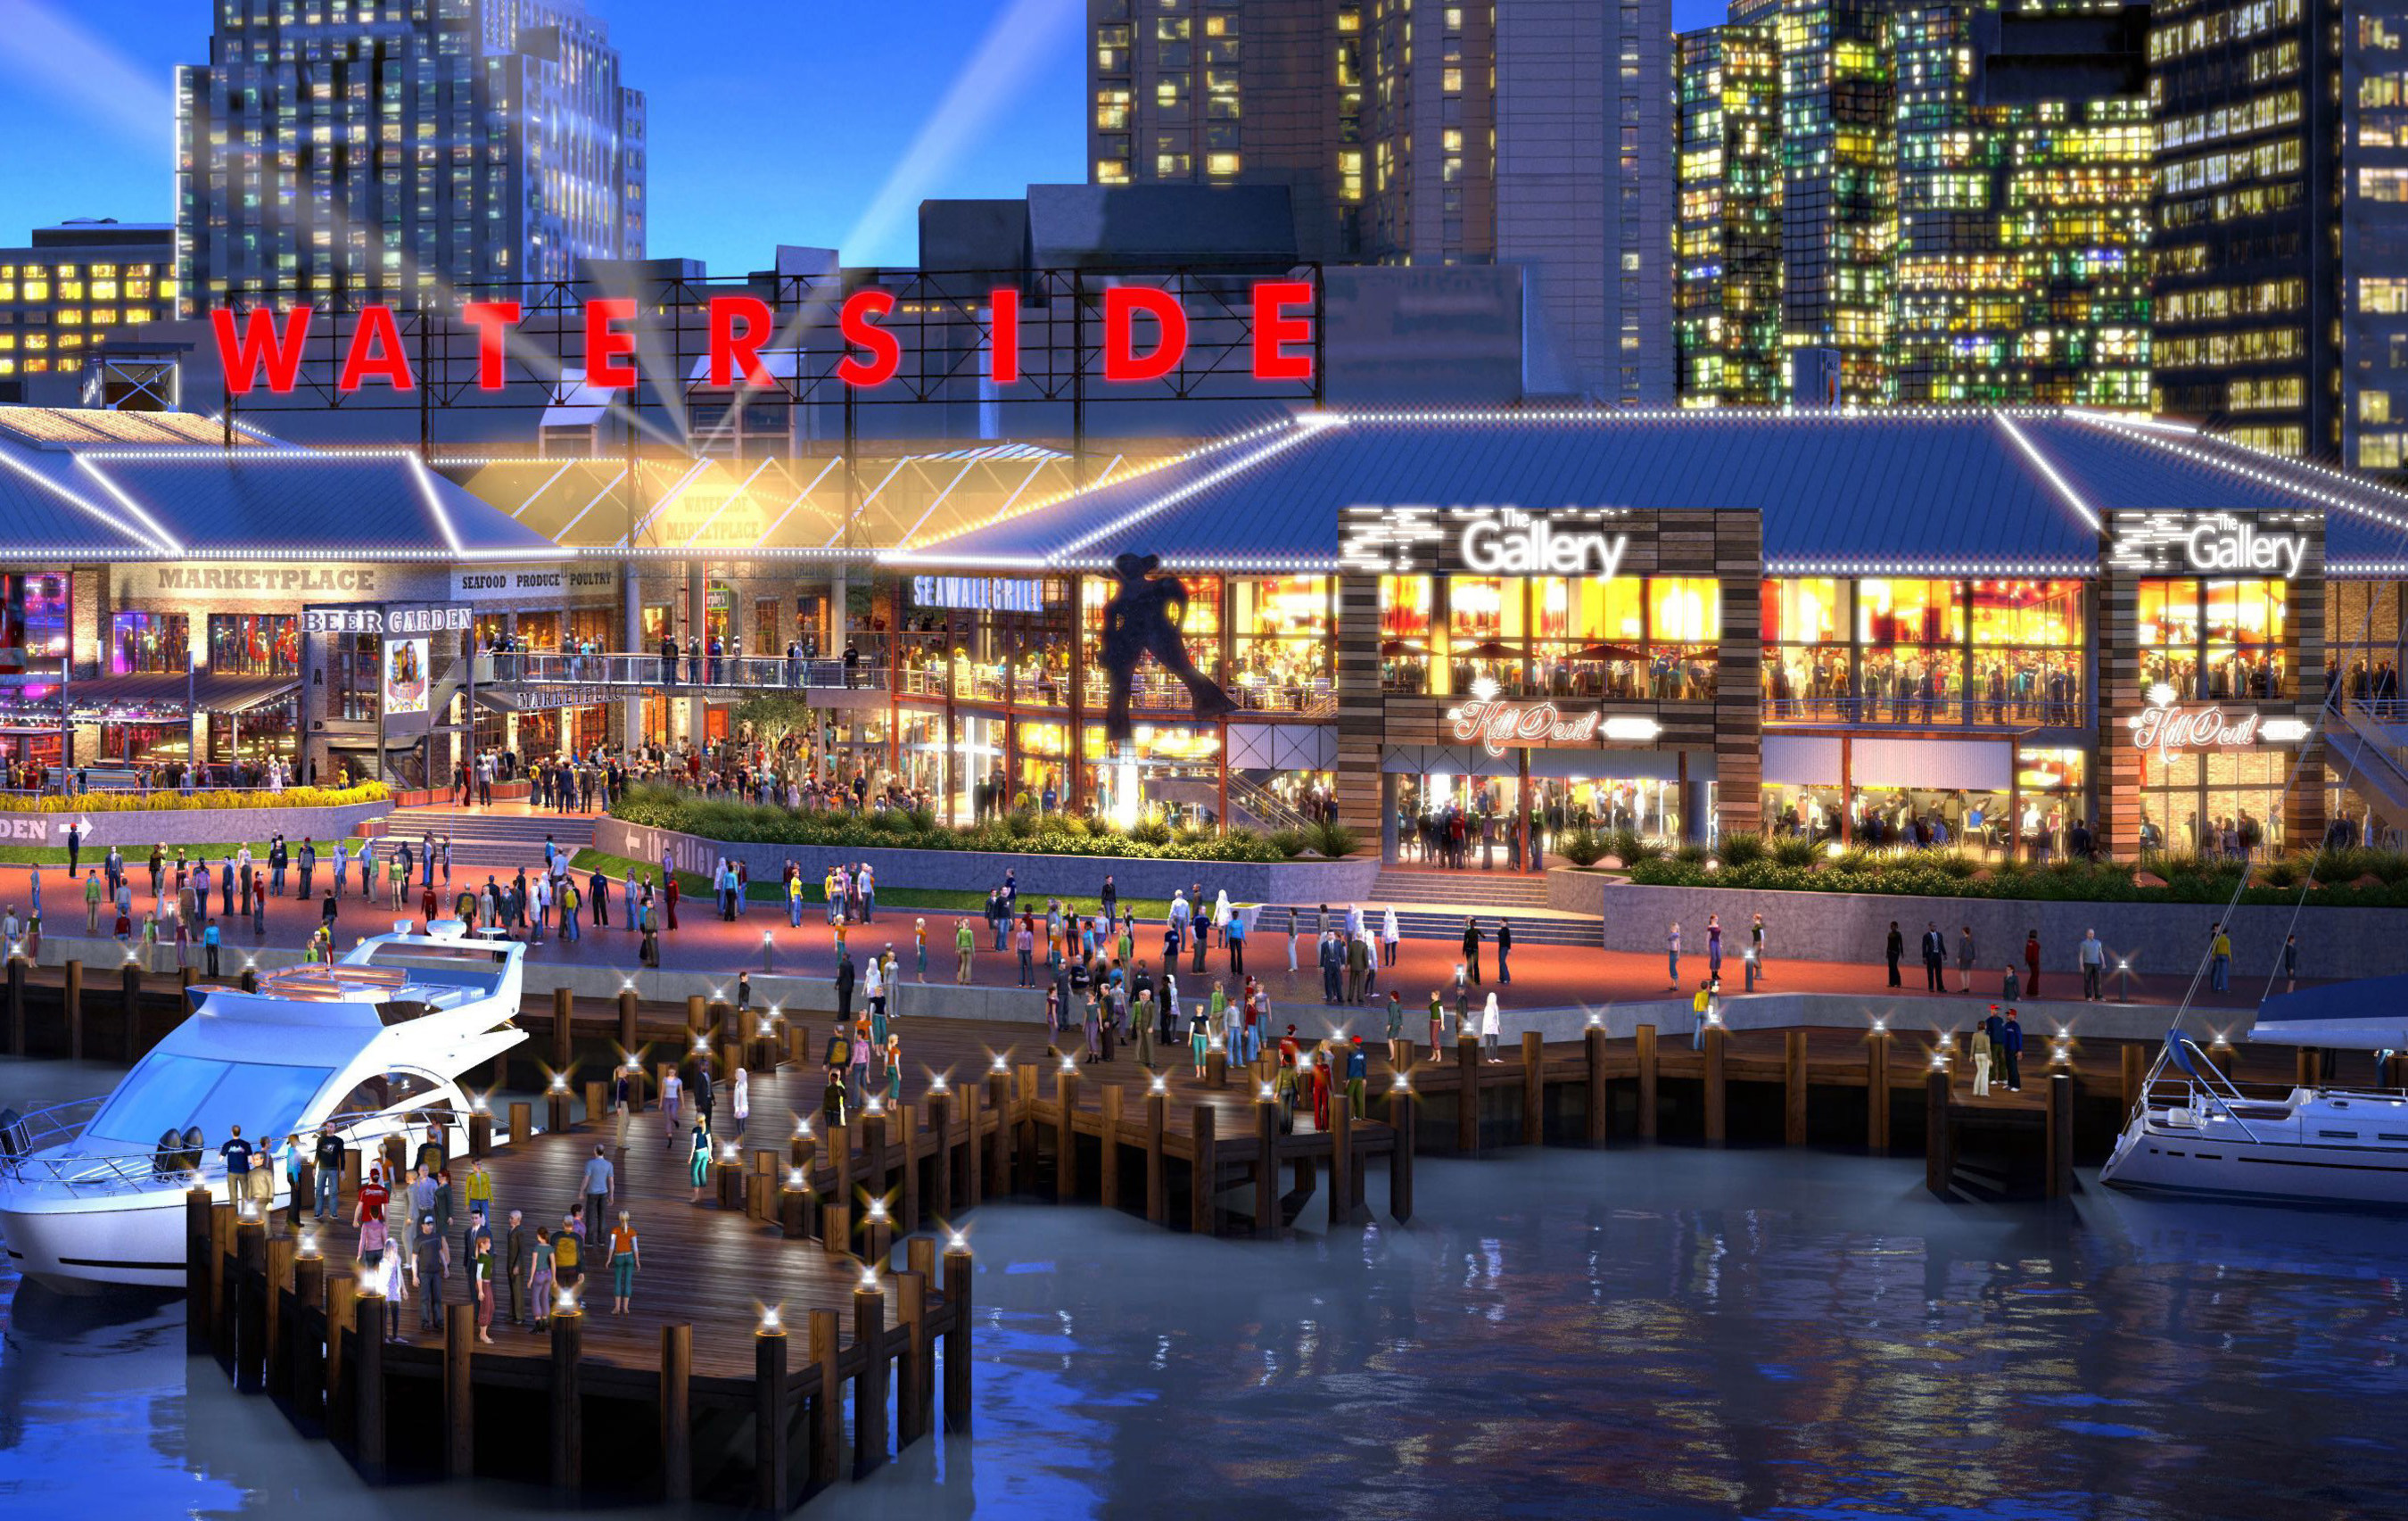 Slated to open Spring 2017, Waterside District will bring 1,000 new jobs to the Hampton Roads region